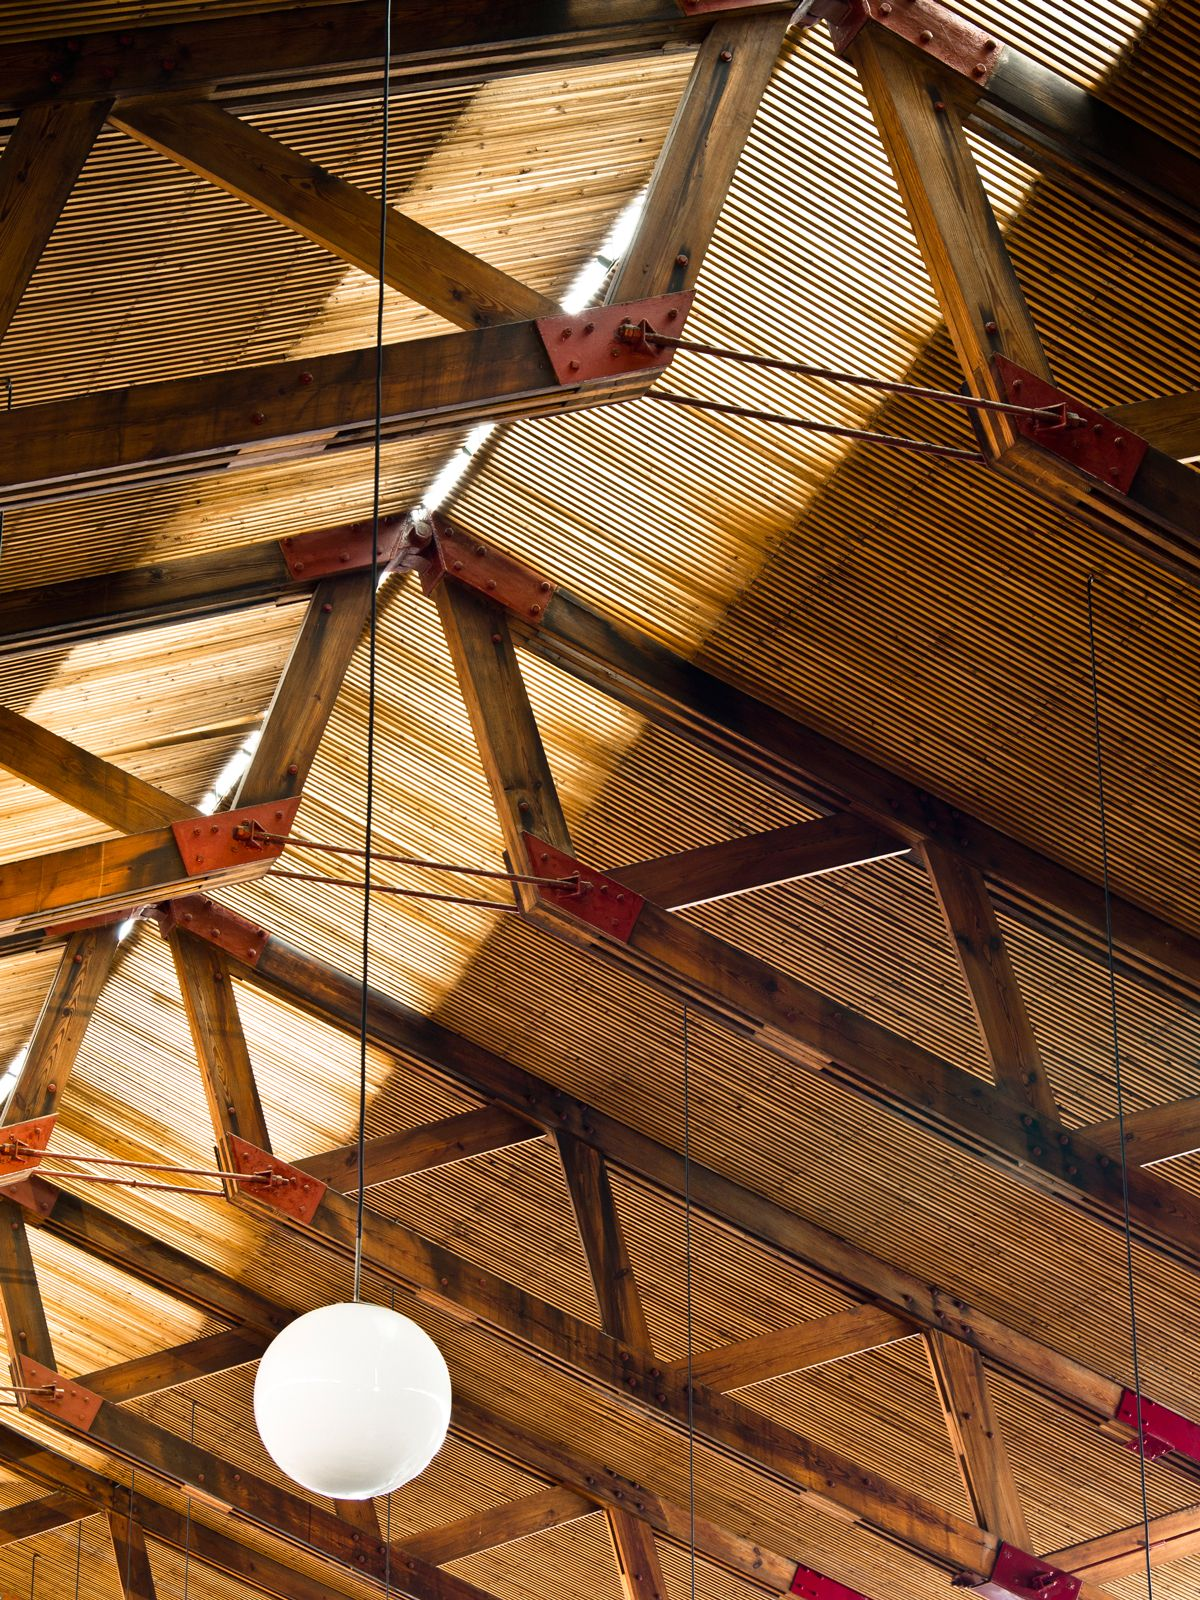 arched beams | Faux Wood Workshop |Modern Wood Trusses